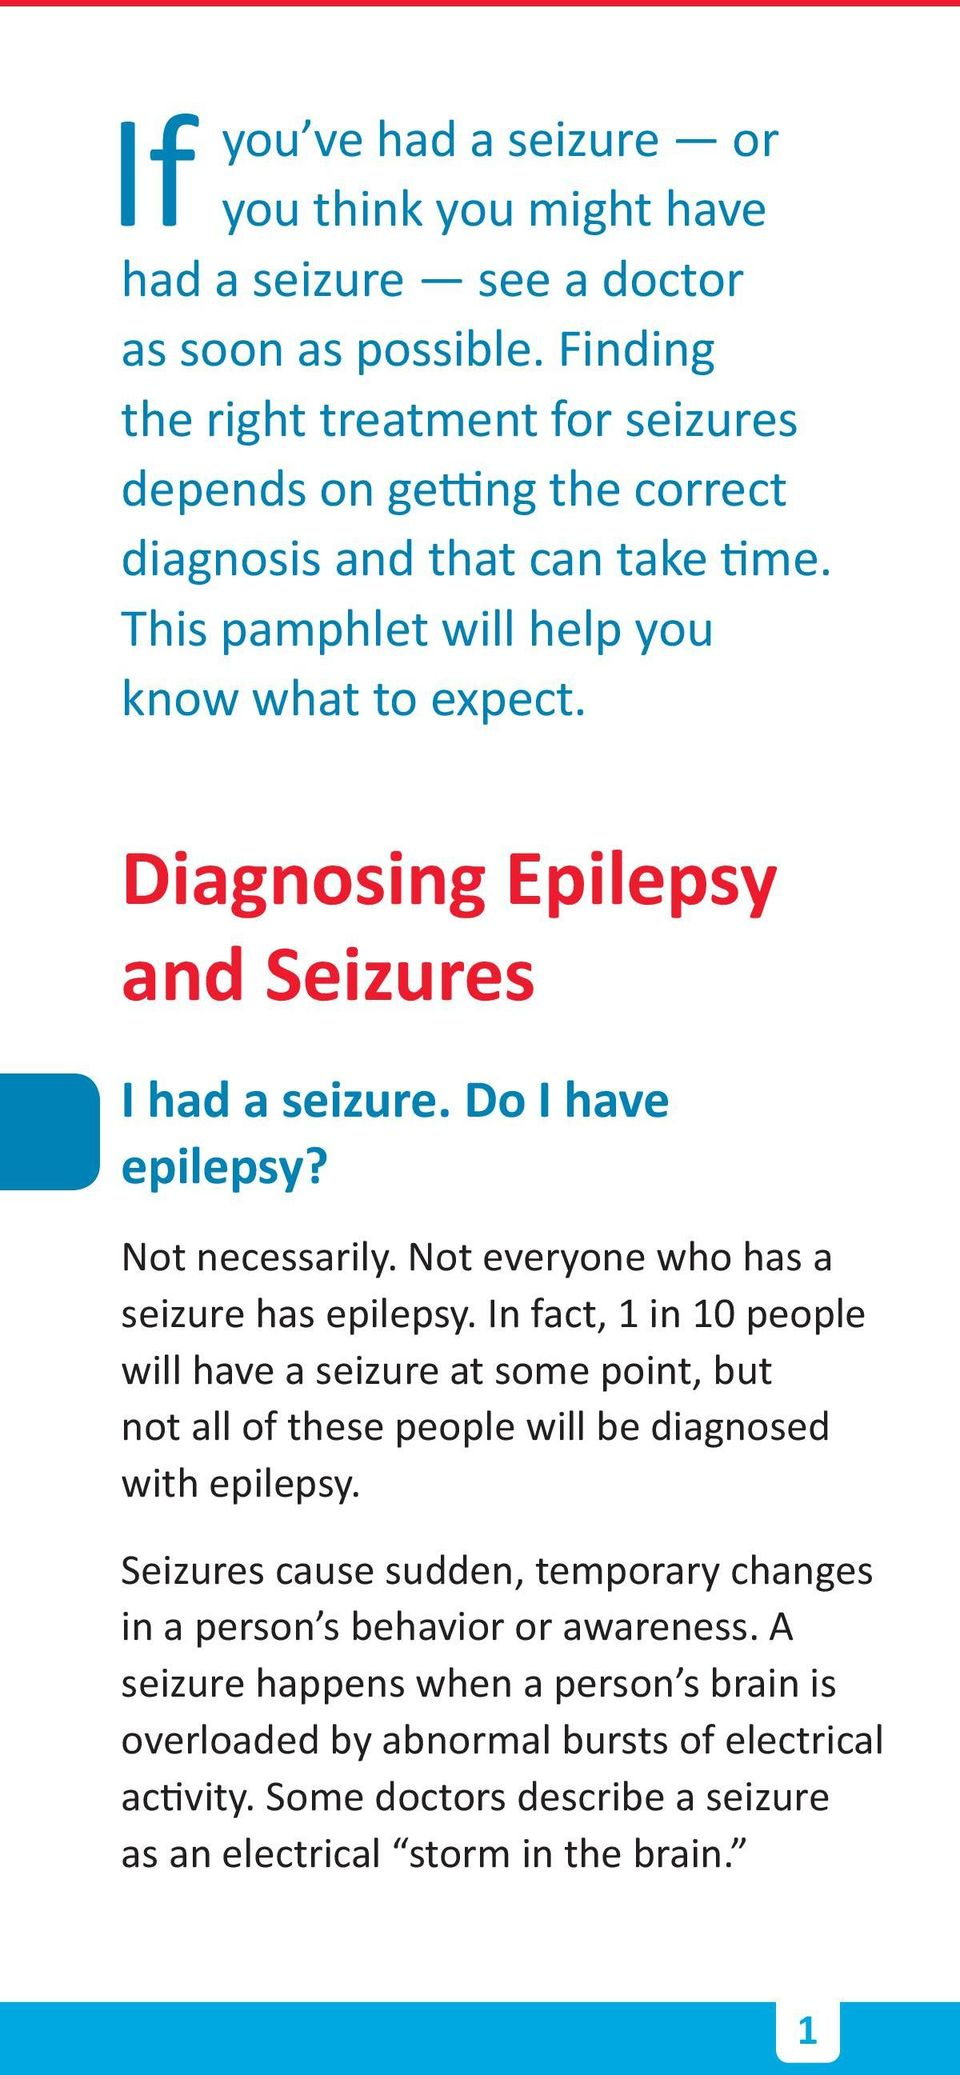 Diagnosing Epilepsy and Seizures I had a seizure. Do I have epilepsy? Not necessarily. Not everyone who has a seizure has epilepsy.